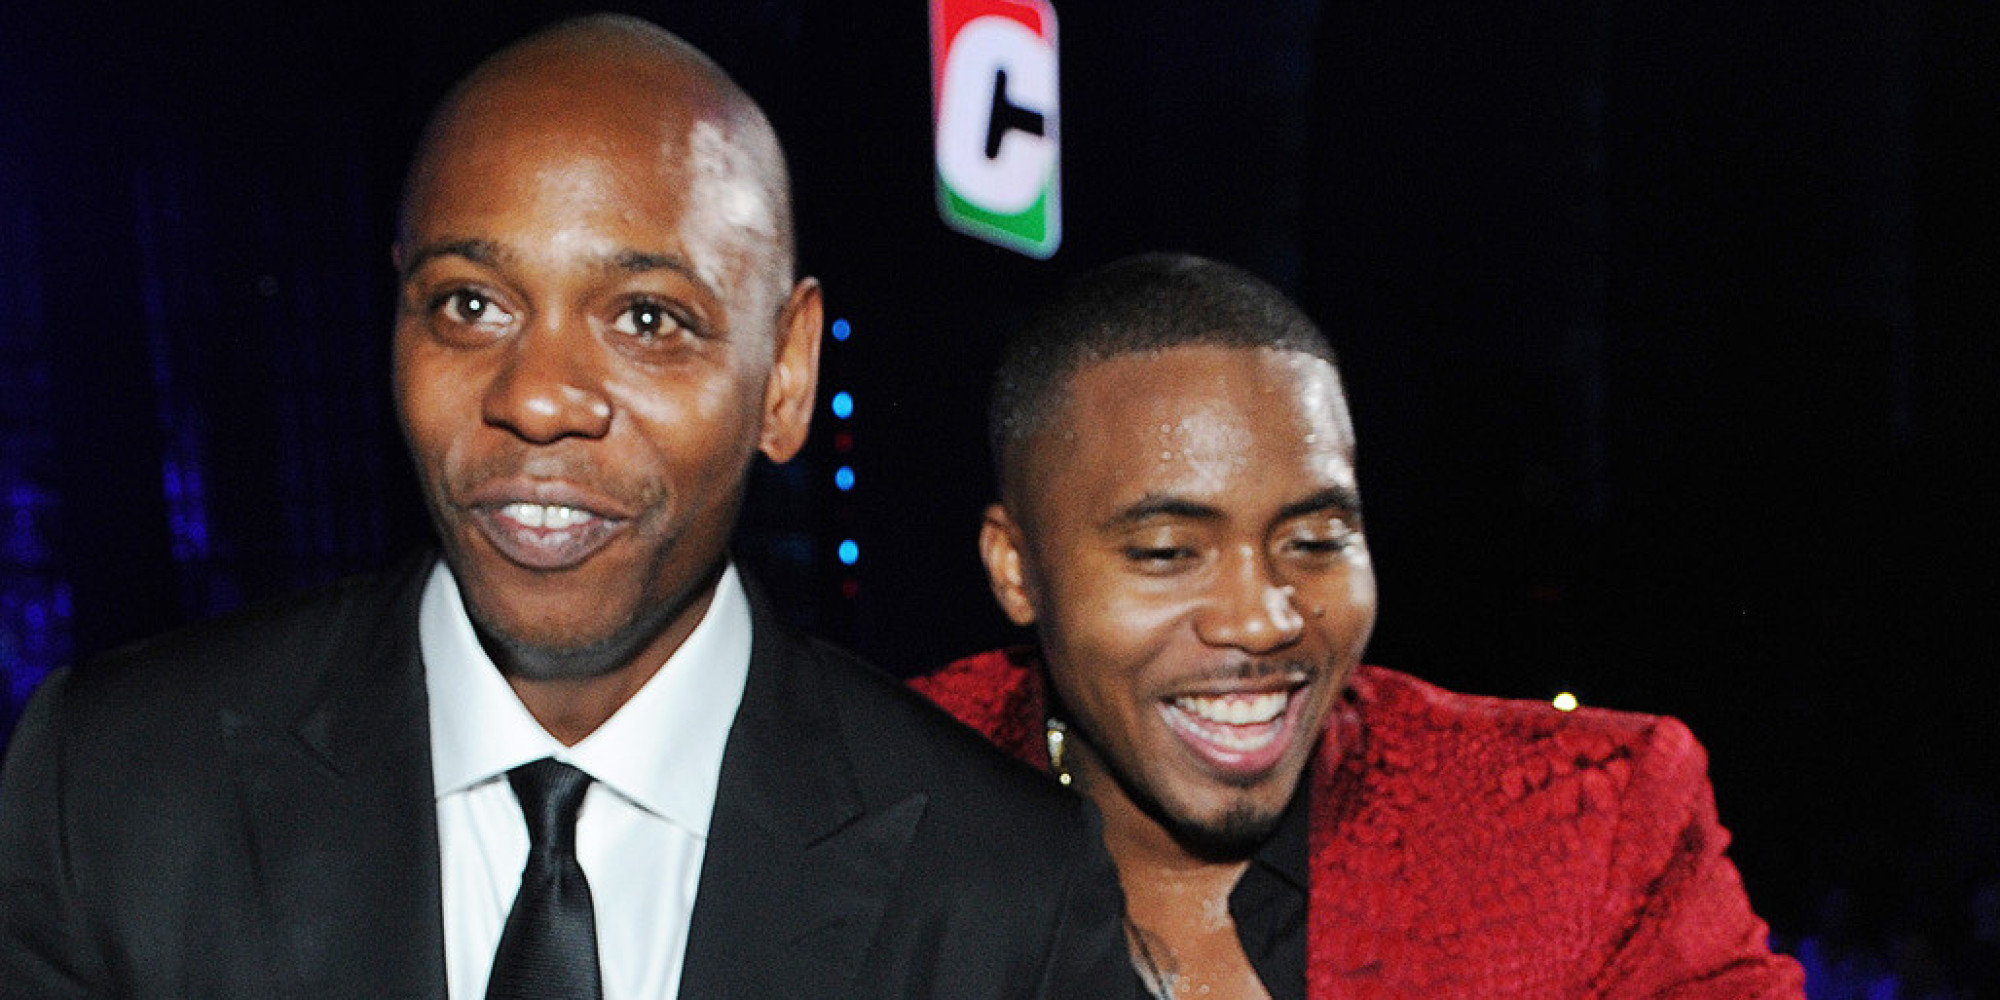 Dave Chappelle Accused of Making Homophobic,